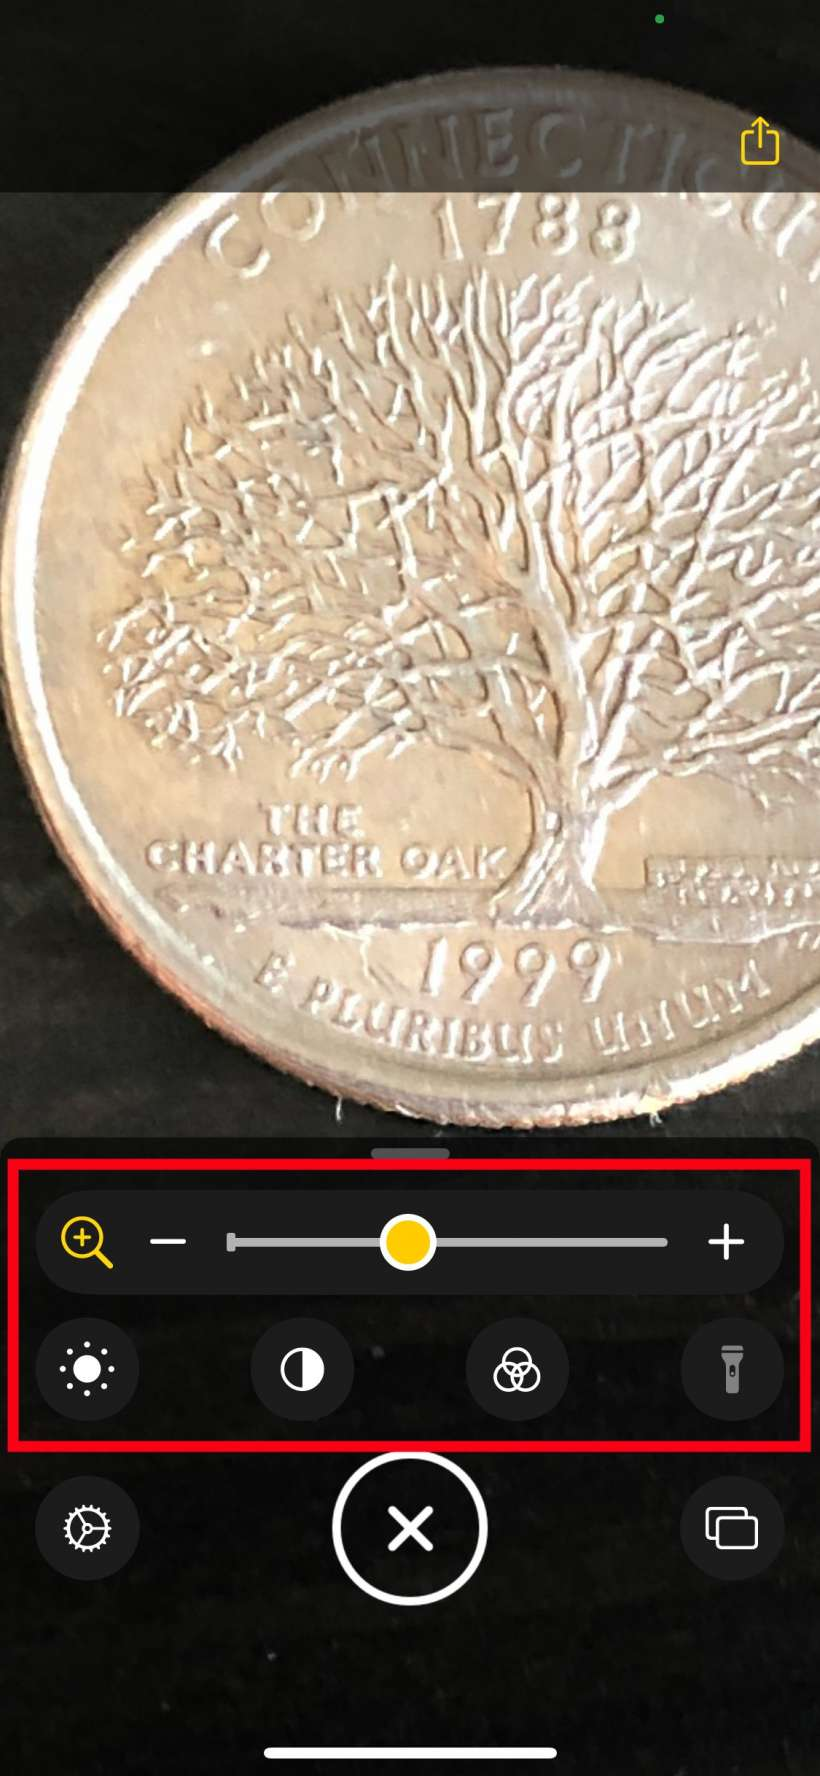 How to use the updated magnifier in iOS 14 on iPhone and iPad.